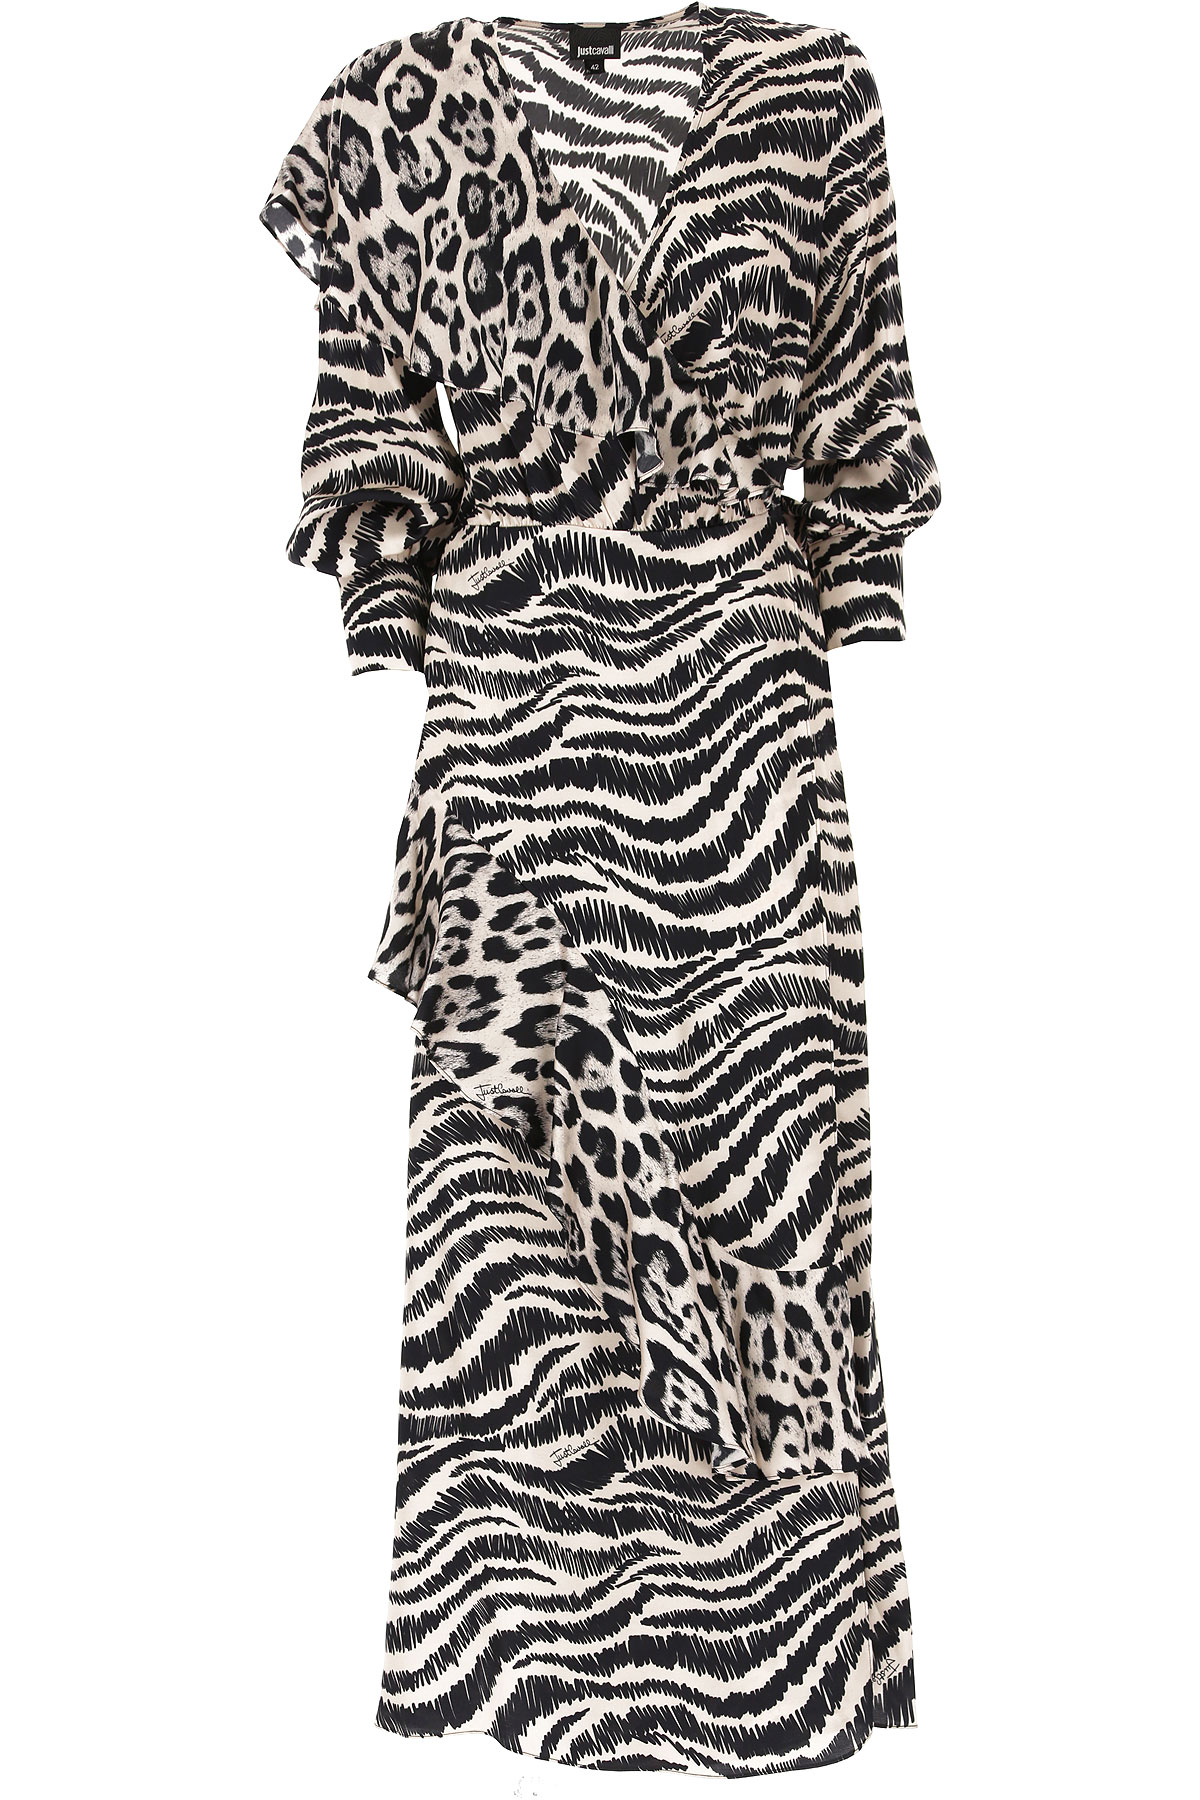 Roberto Cavalli Dress for Women, Evening Cocktail Party On Sale, Dirty White, Viscose, 2019, 4 6 8